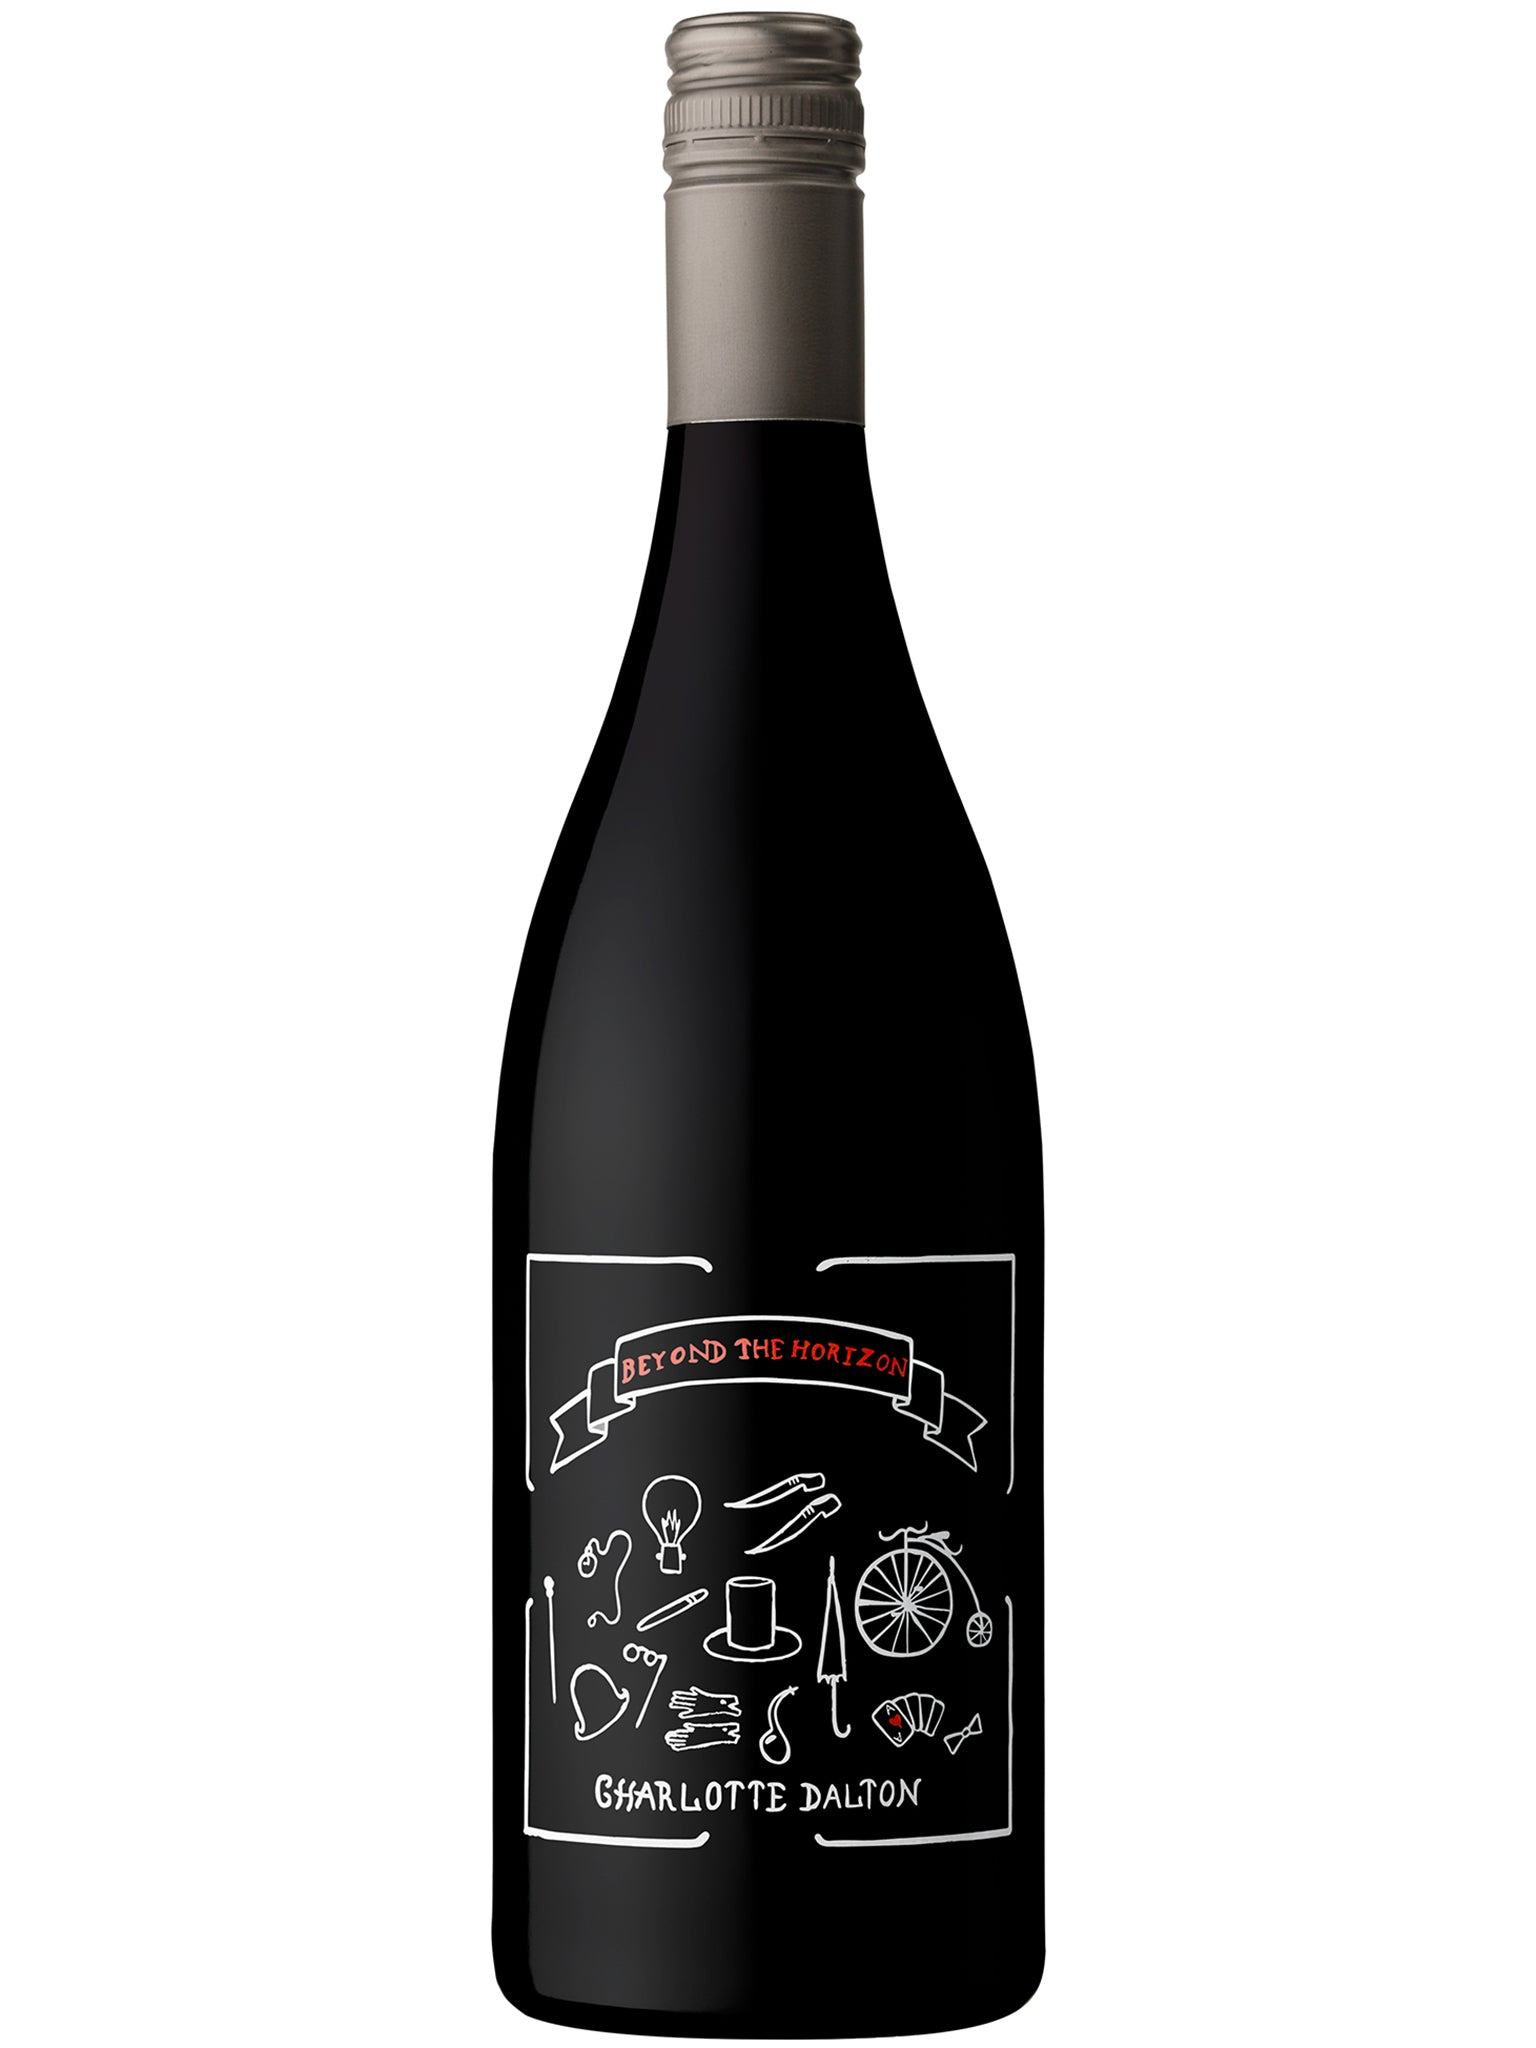 Charlotte Dalton Beyond the Horizon Shiraz 12pk 2016